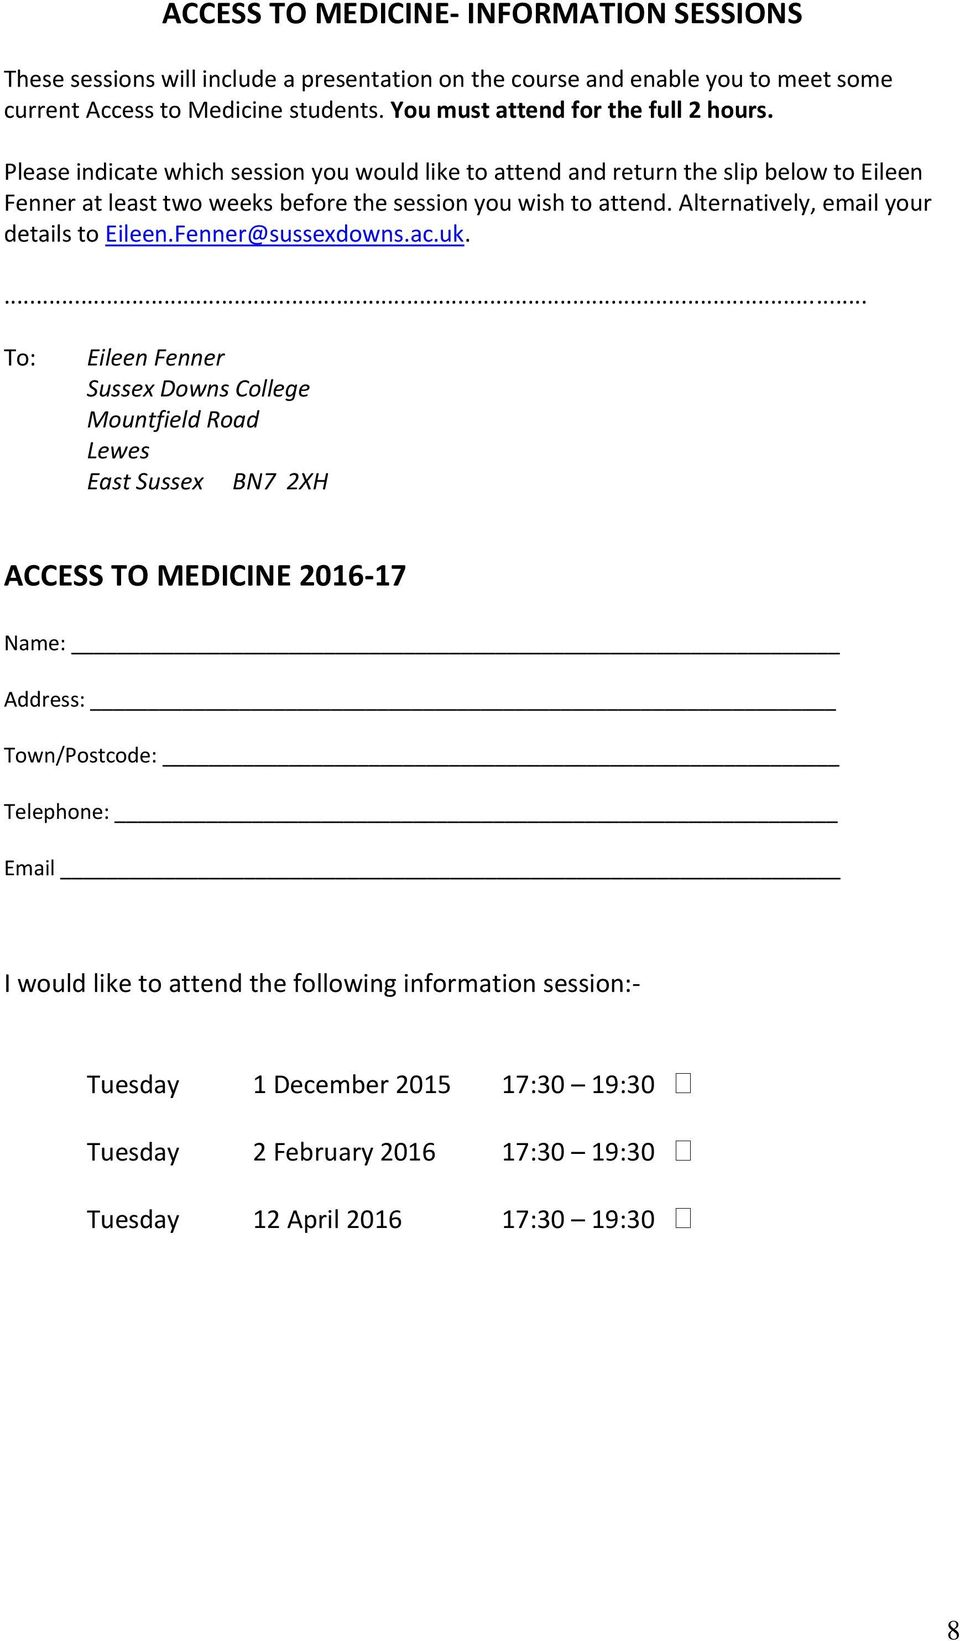 Please indicate which session you would like to attend and return the slip below to Eileen Fenner at least two weeks before the session you wish to attend.